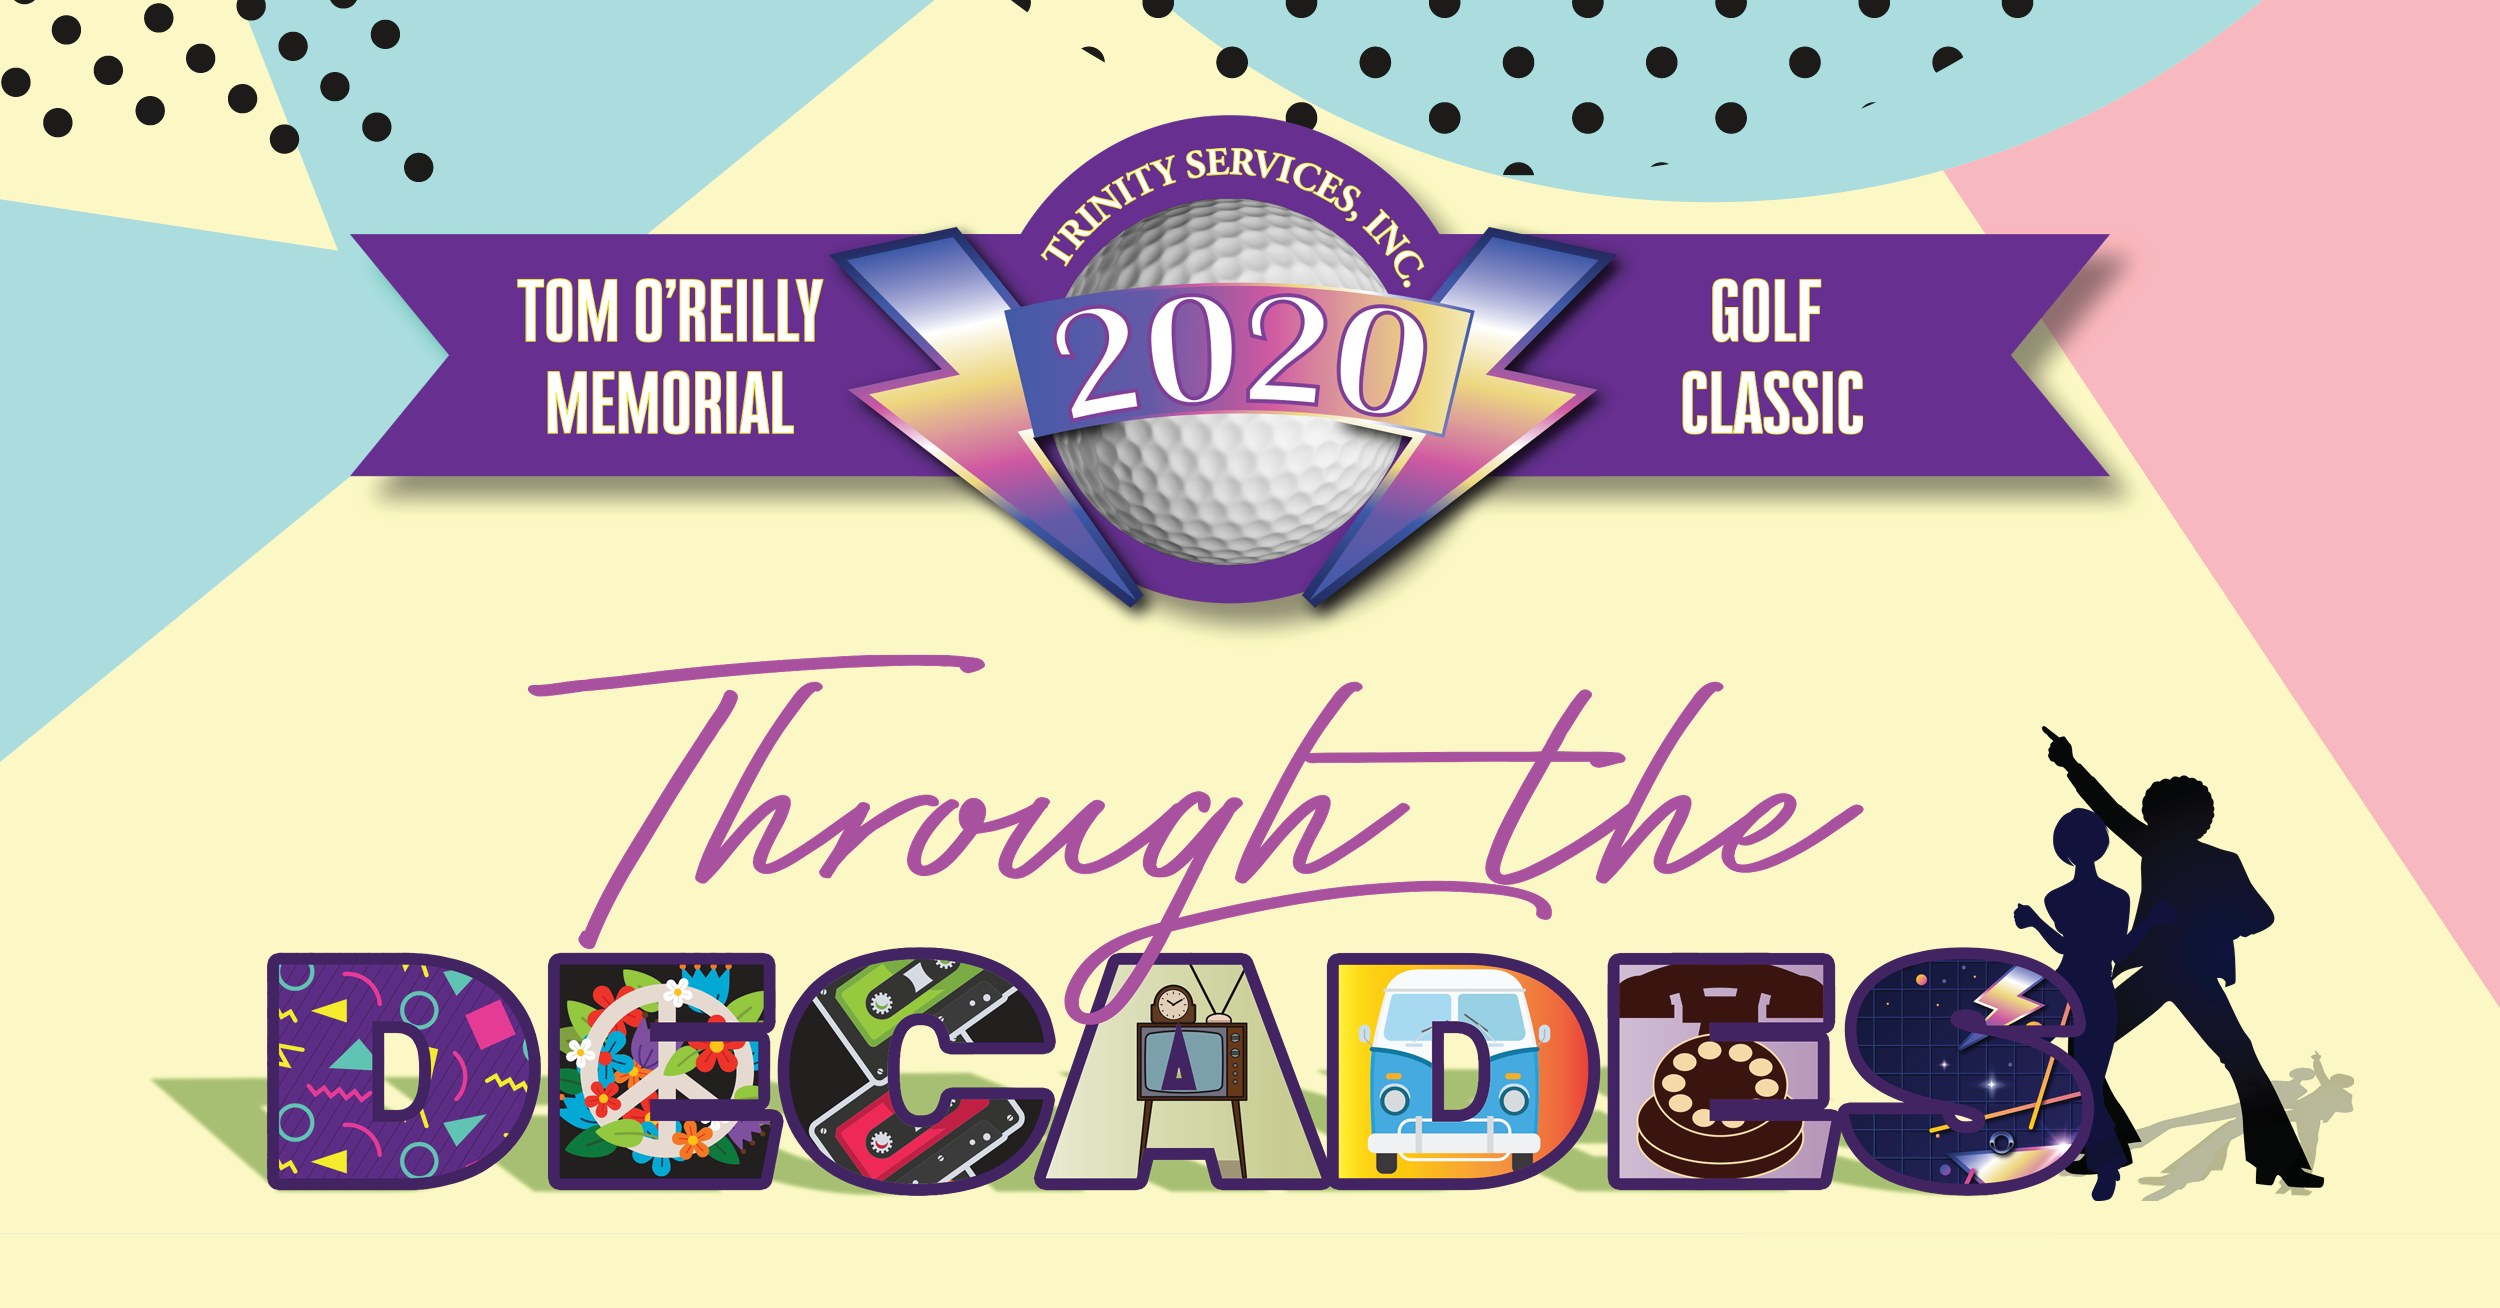 Trinity Services 2020 Golf Classic Through the Decades